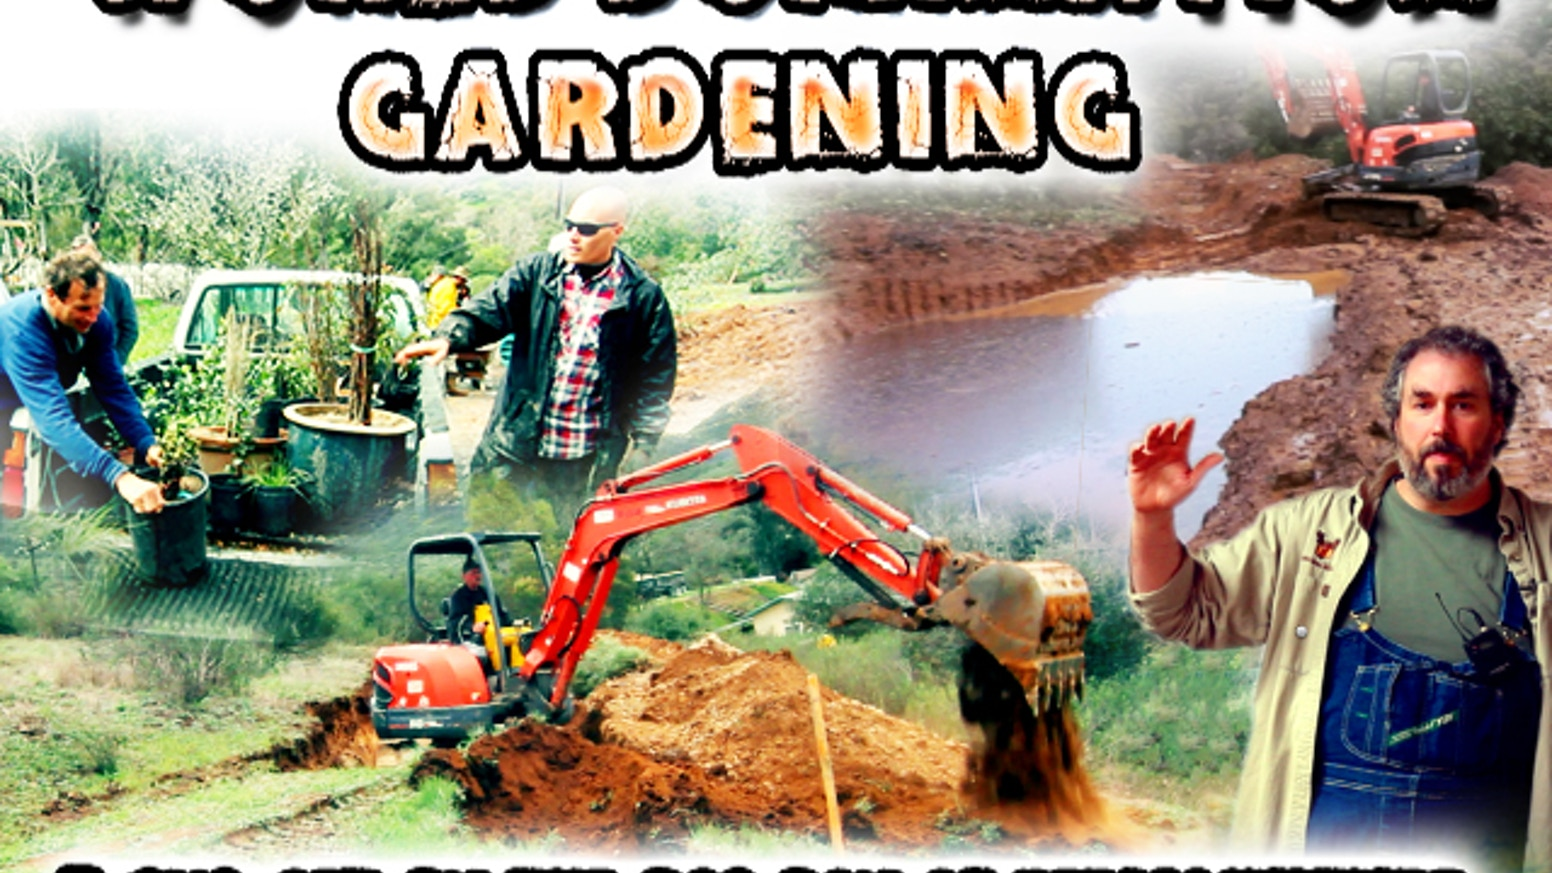 Documentary featuring Hugelkultur, Earthworks and the Bad Boy of Permaculture. With a pond, a swale and a hugelkultur bed on a terrace.